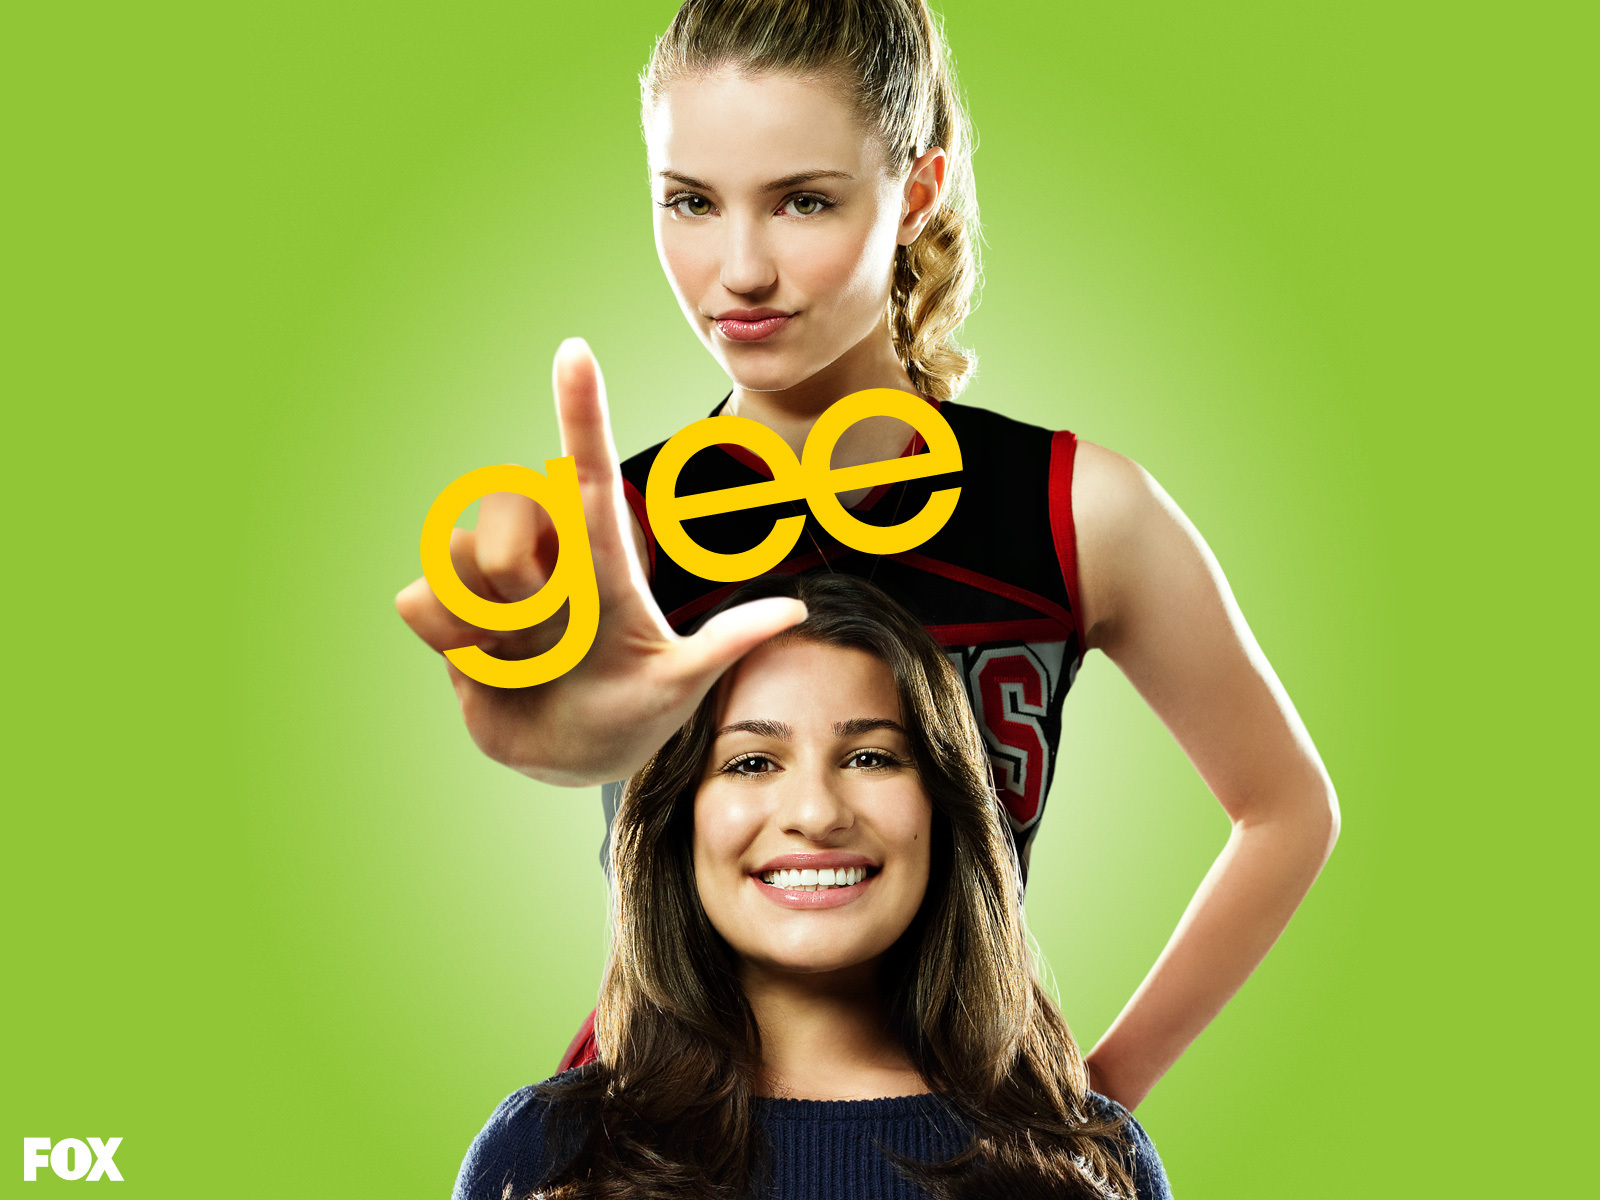 cheerleader Quinn Fabray - Quinn Fabray Wallpaper (8629650) - Fanpop